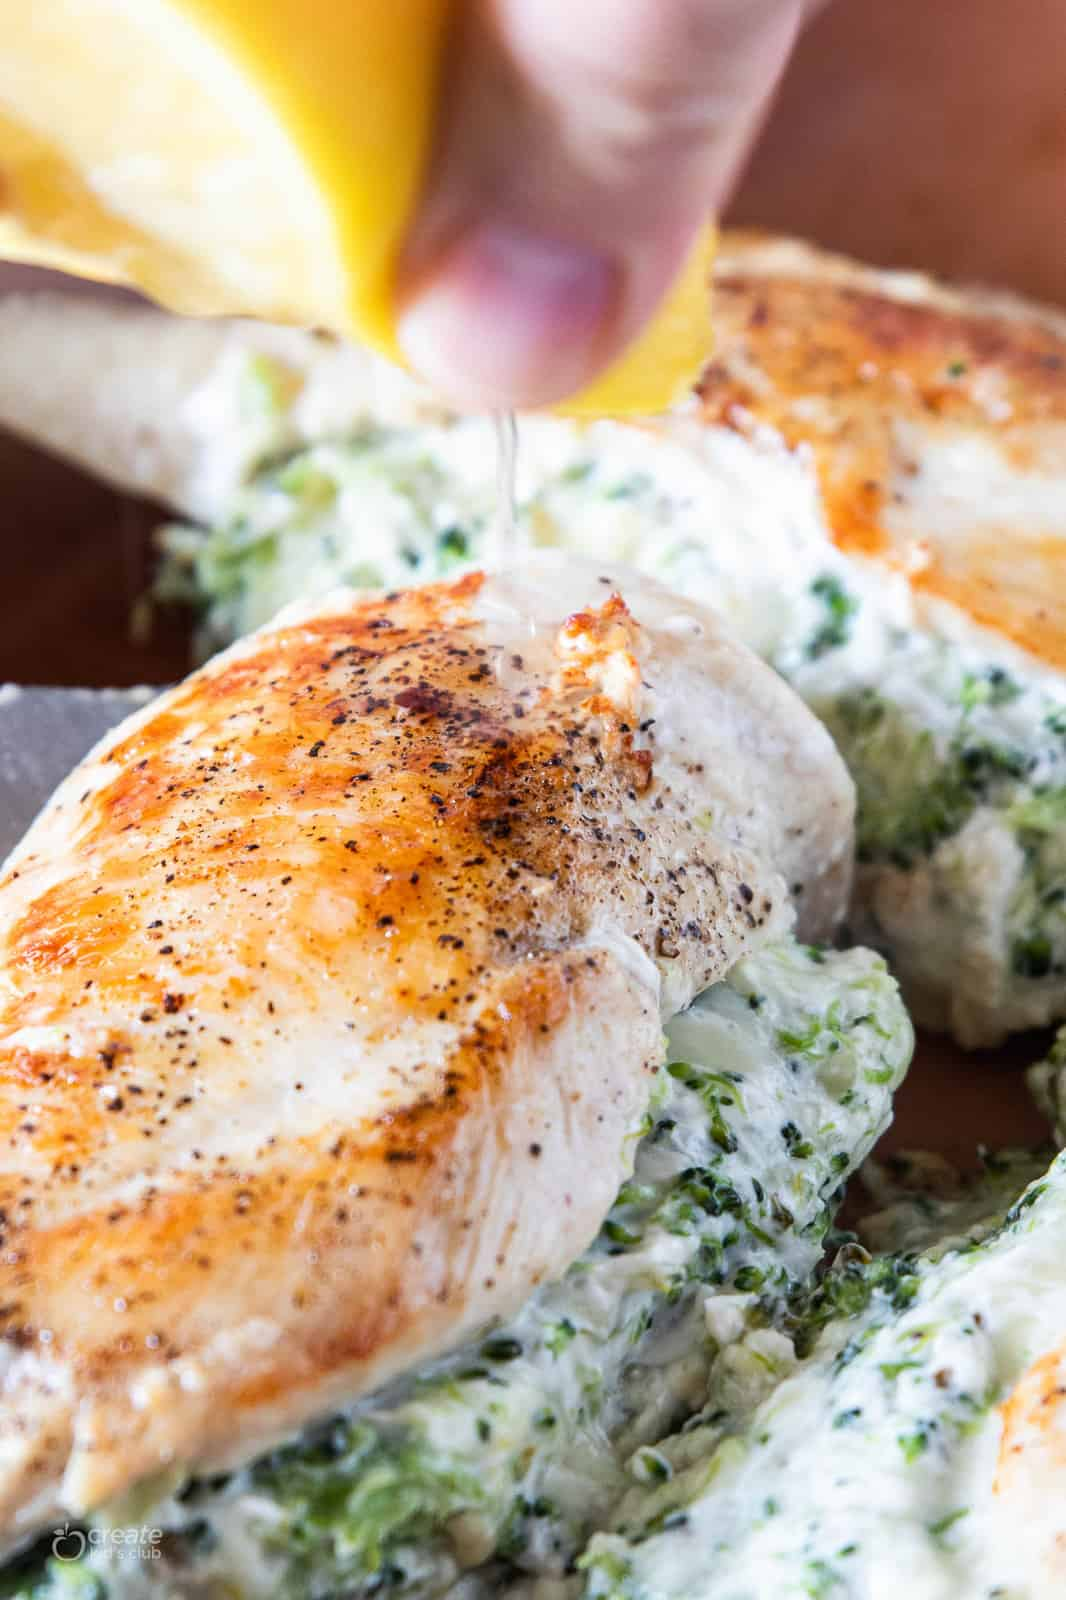 lemon squeezed over stuffed chicken breast